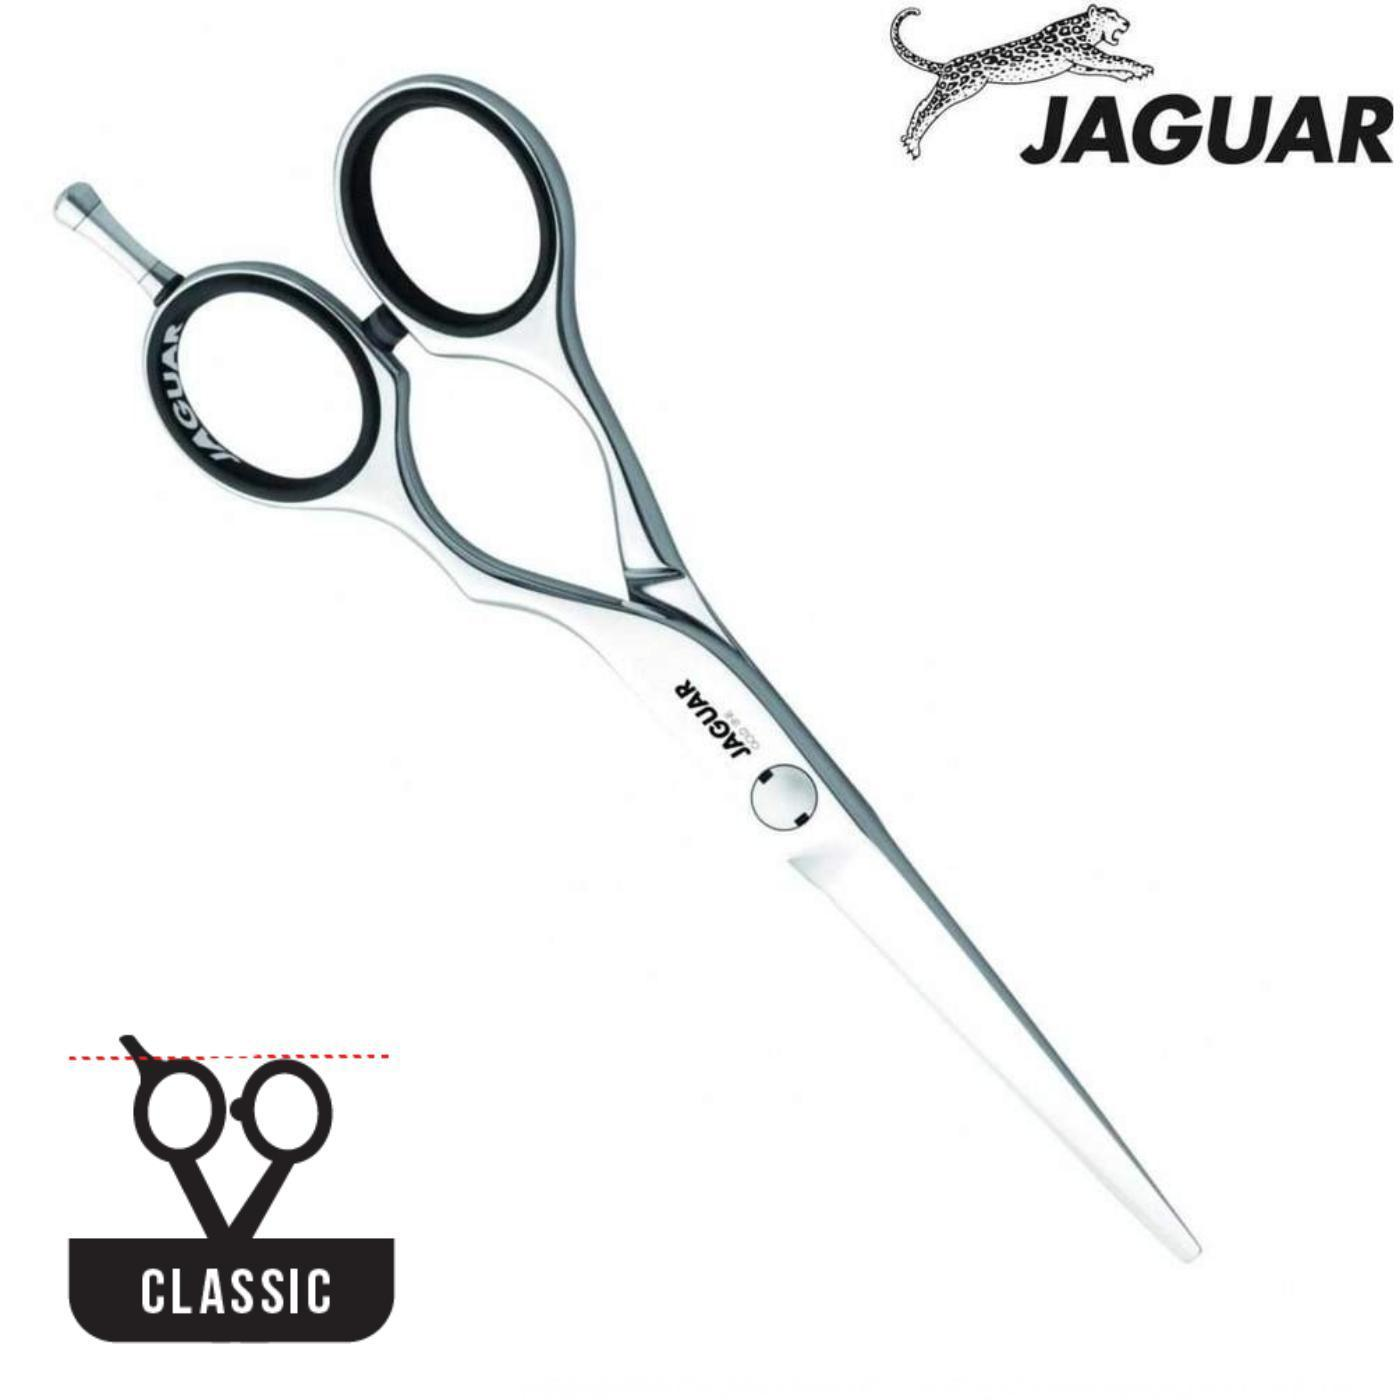 Jaguar Gold Line Diamond Hair Cutting Scissors - Japan Scissors